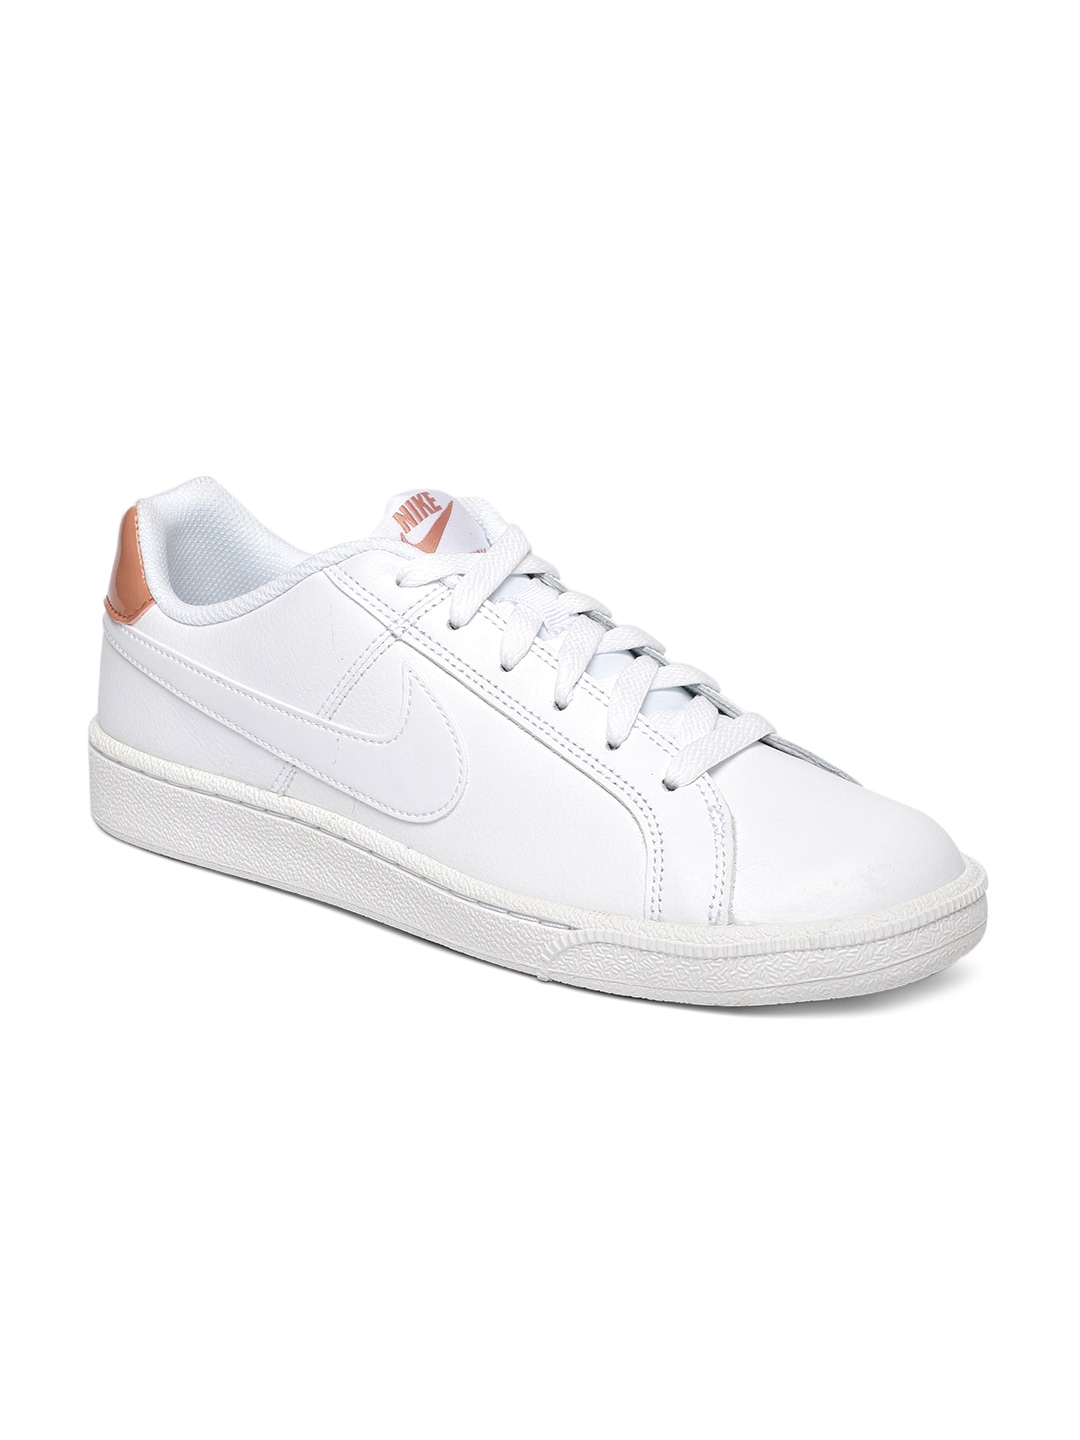 664a2ad3881 Nike Court Casual Shoes - Buy Nike Court Casual Shoes online in India